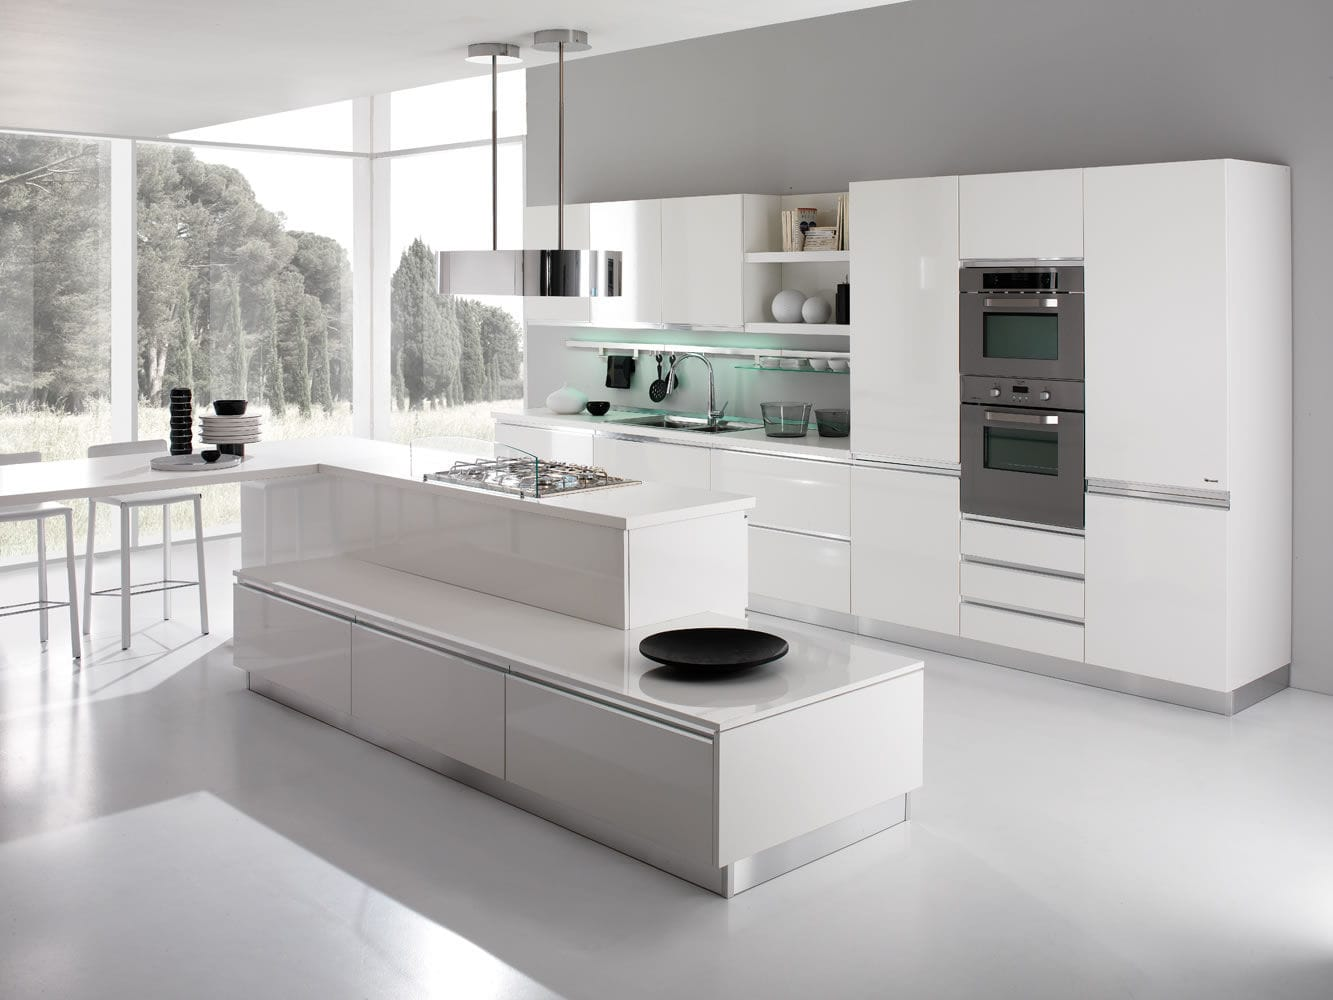 Cucine Con Isola Moderne. Cucine Moderne Con Isola By Meka With ...